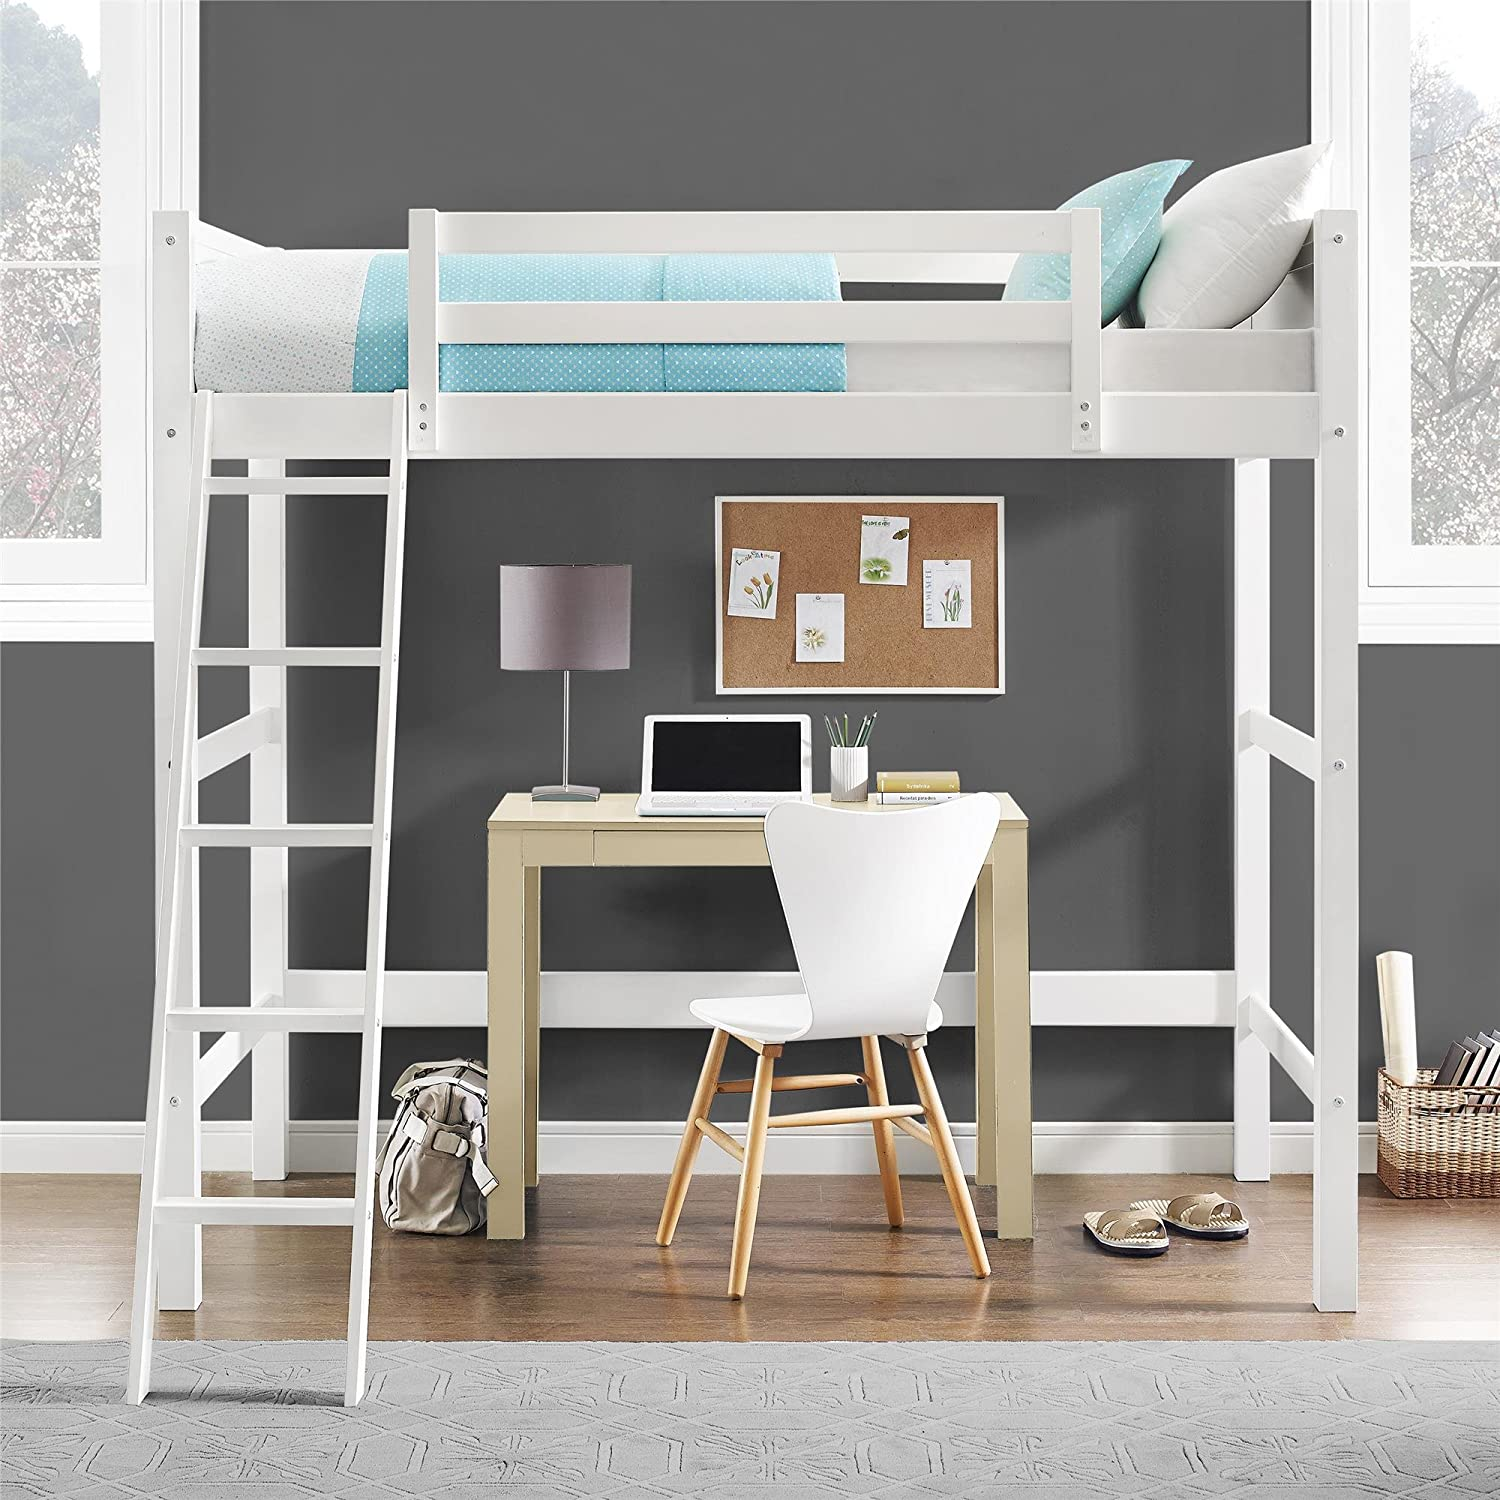 Advantages And Drawbacks Of Strong Wooden Loft Bed With Stairs Amazon.com: Dorel Living Wood Loft Style Bunk Bed, Twin: Kitchen u0026 Dining